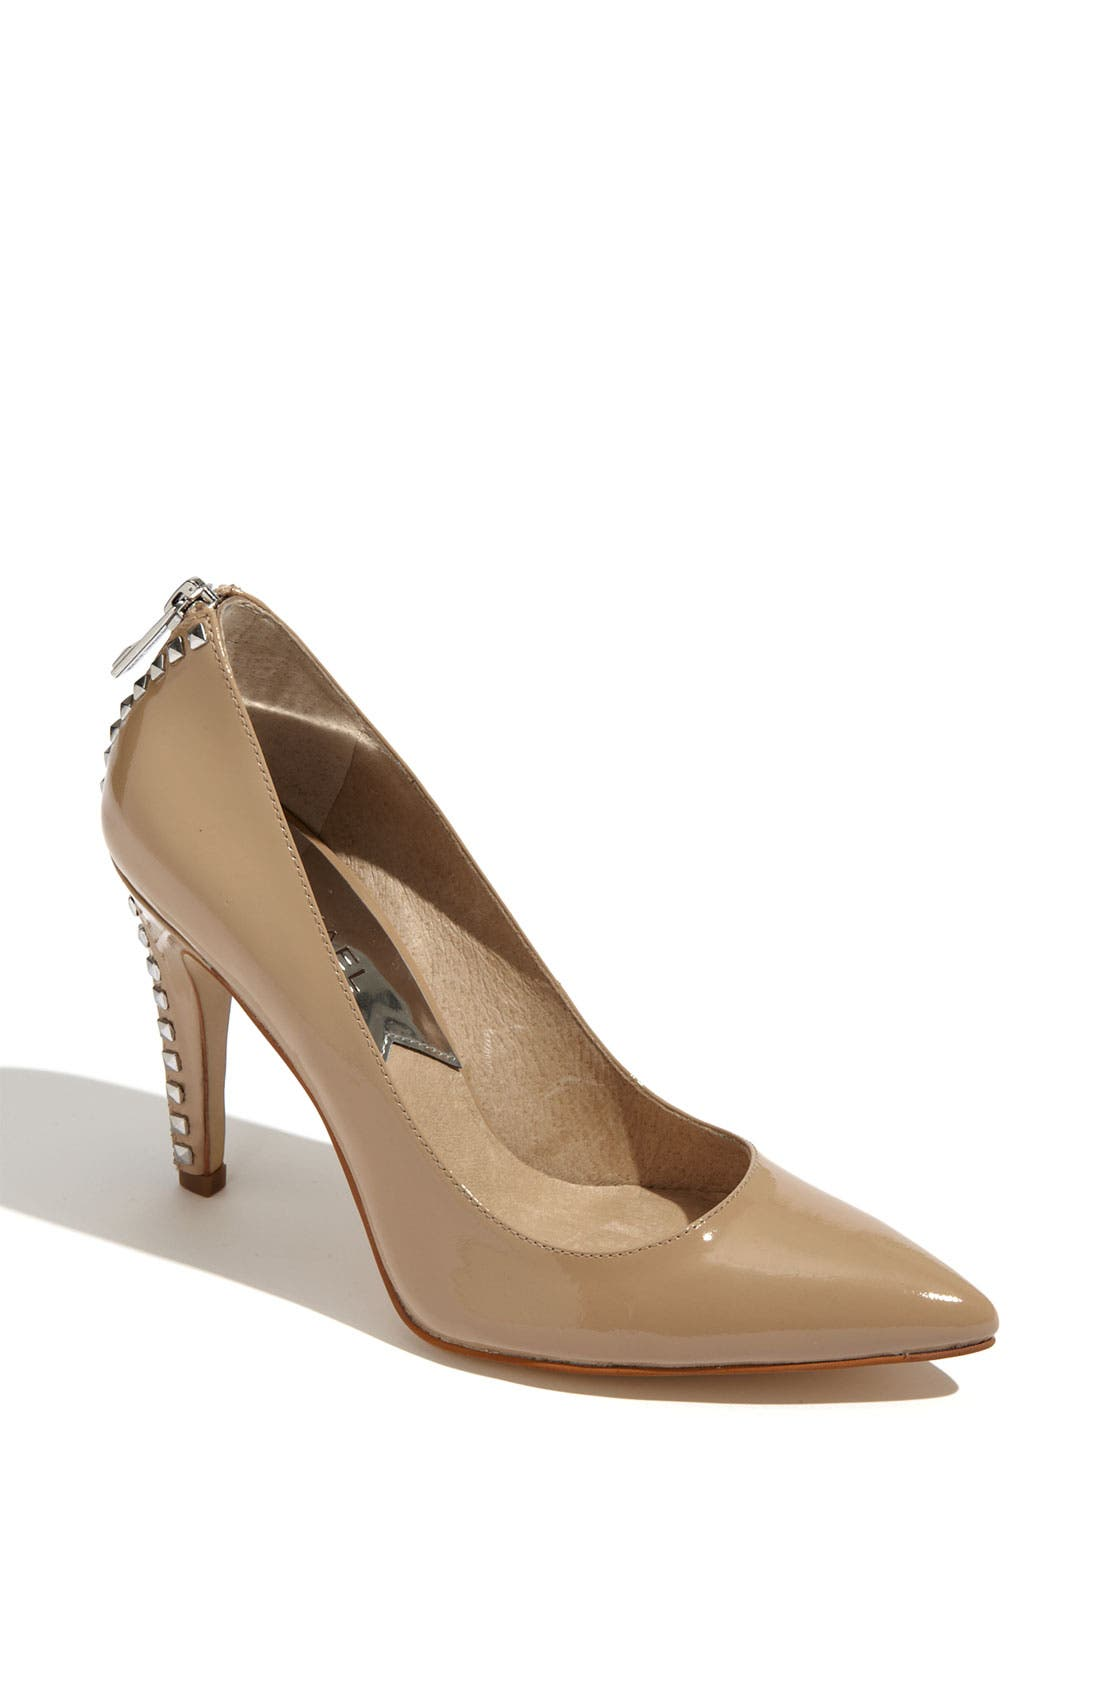 Main Image - MICHAEL Michael Kors 'Rock 'n' Roll' Pump